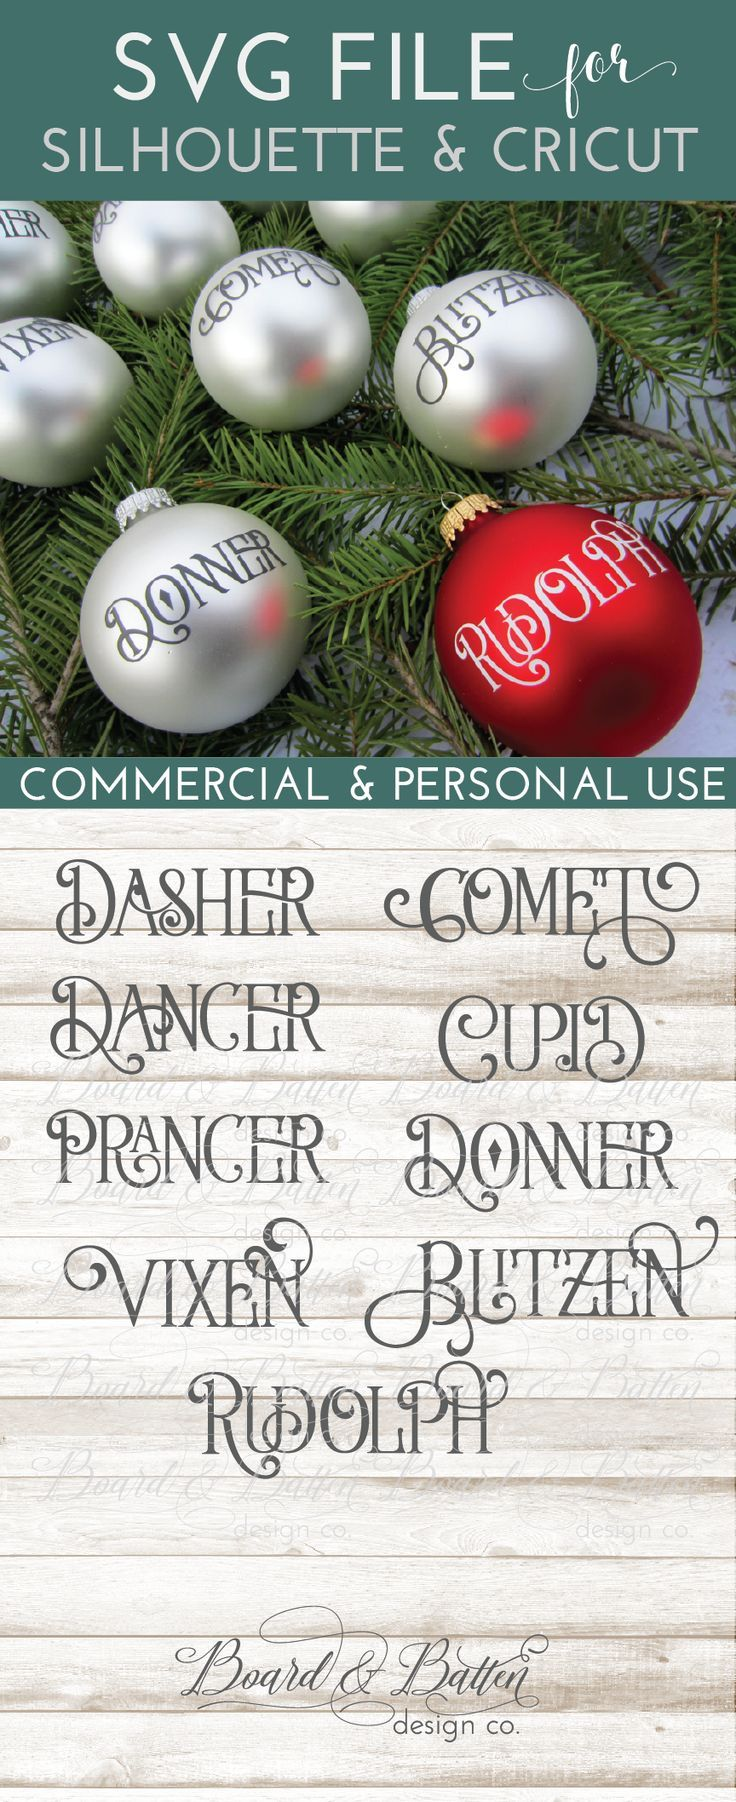 Who Doesn T Need A Set Of Reindeer Name Svg Files Grab This Set Today Of Cute Vintage Style Reindeer Names Vintage Reindeer Cricut Ornaments Christmas Crafts